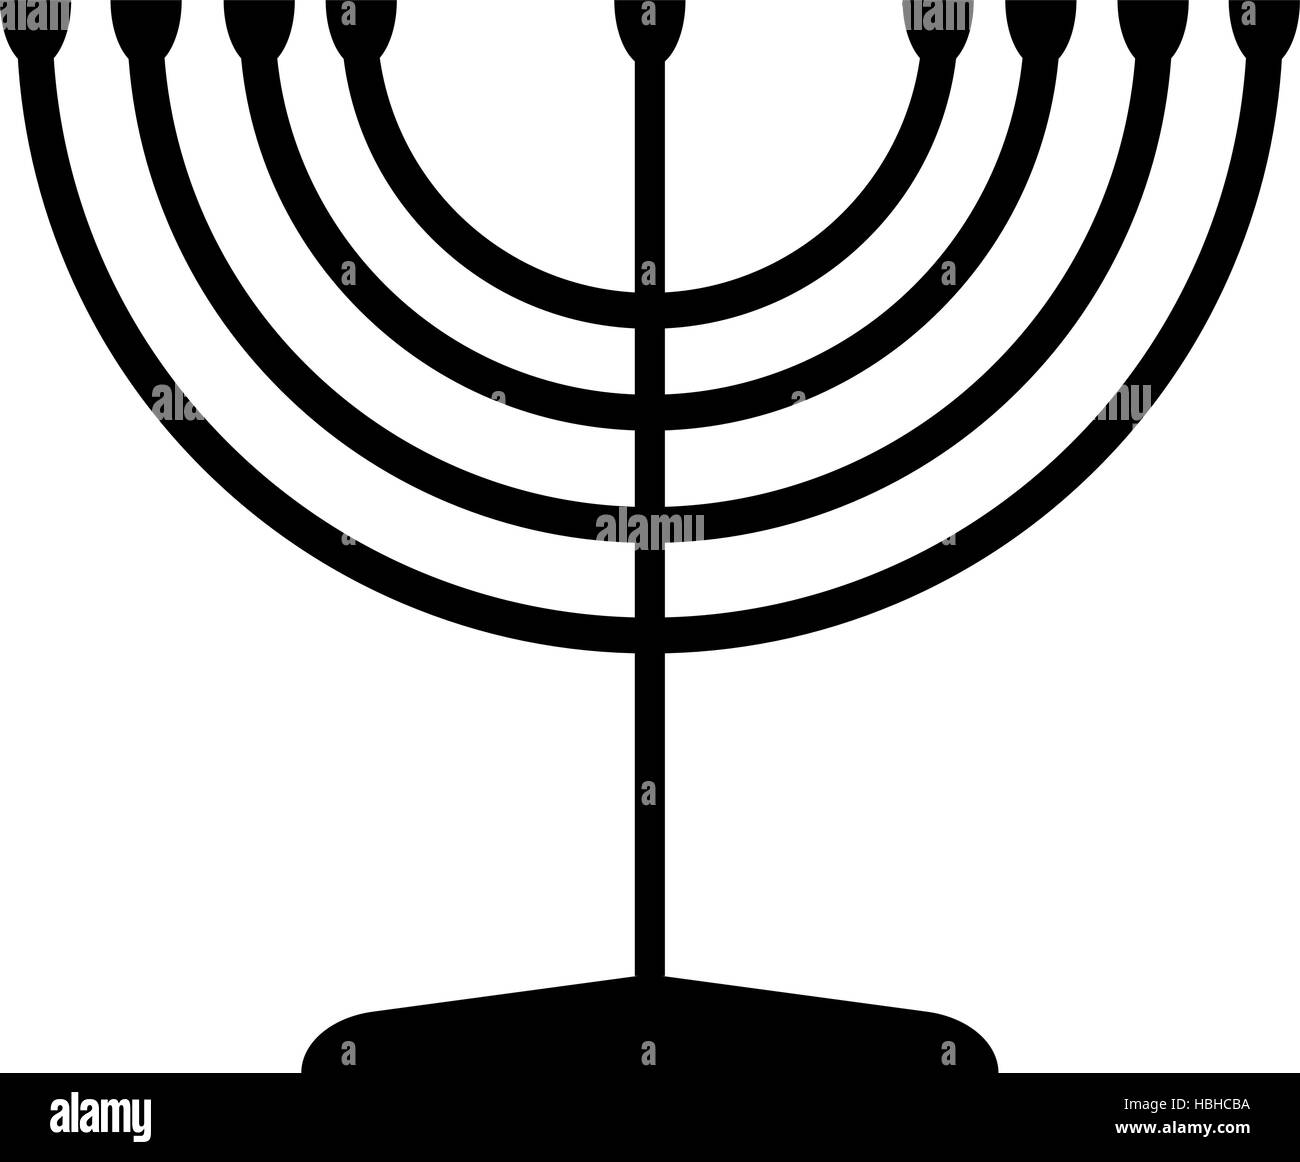 Menorah symbol of Judaism. Illustration isolated on white background. - Stock Vector